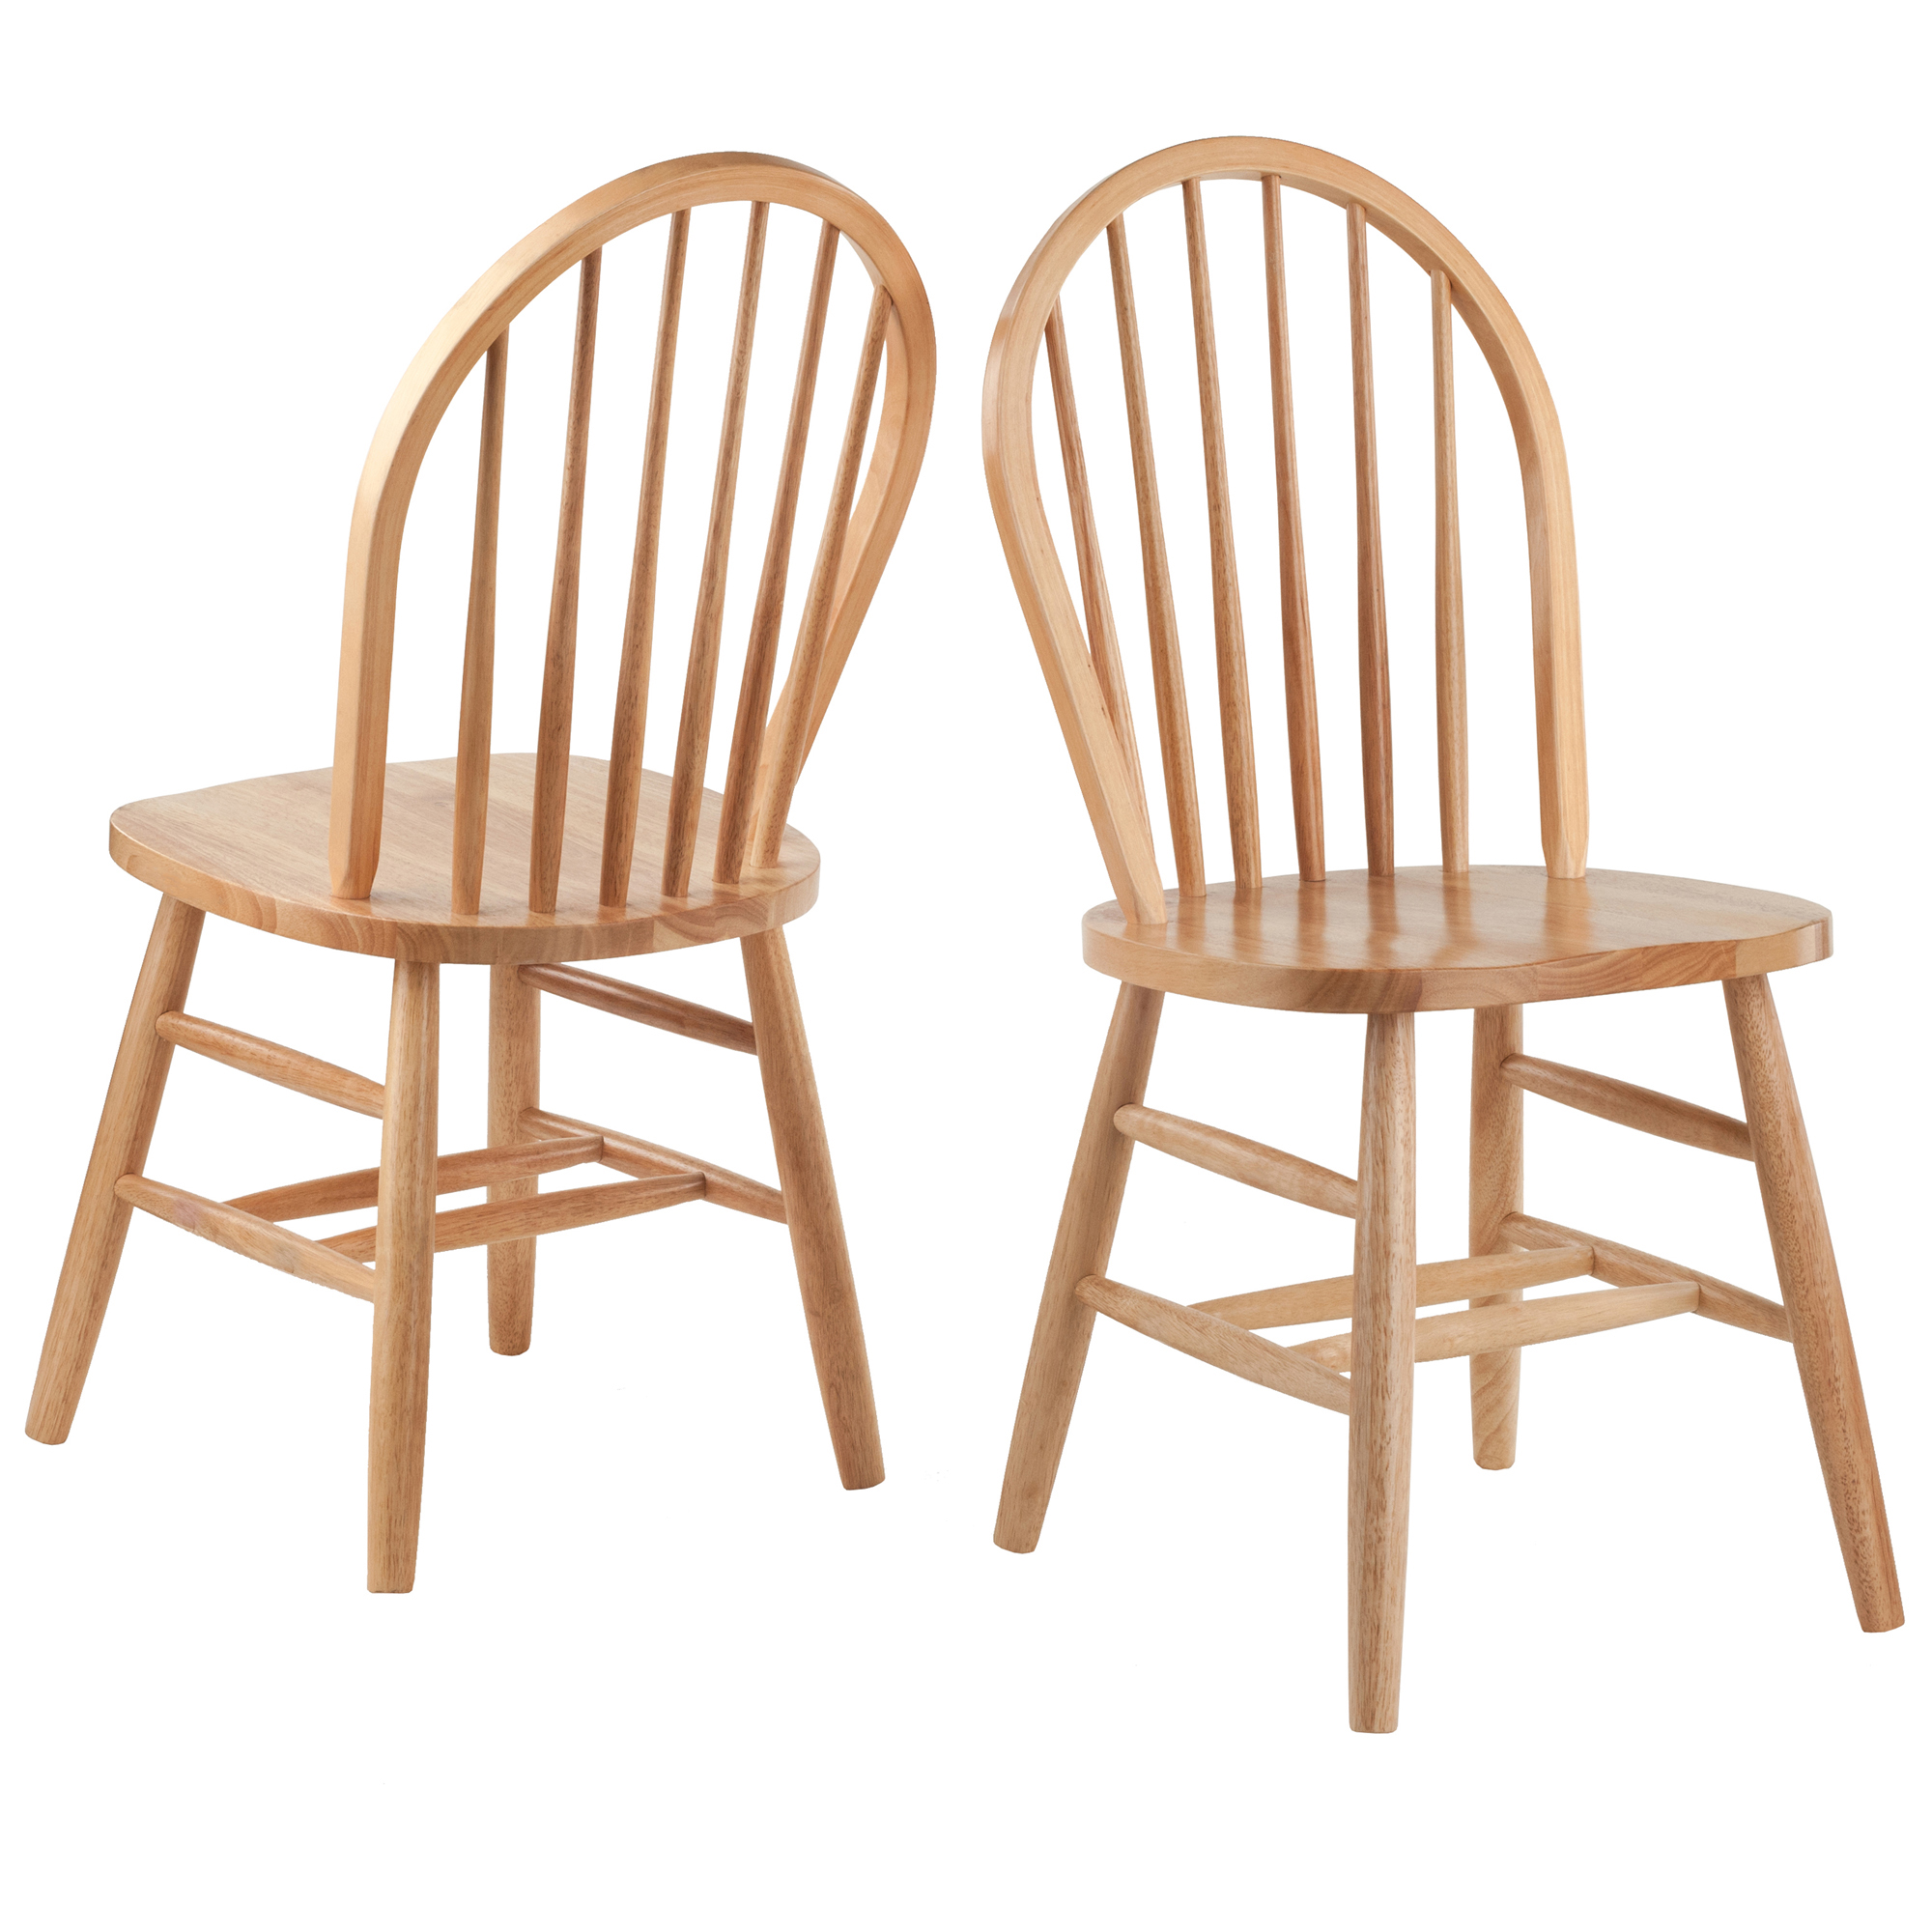 Winsome Wood Windsor Chair, Set of 2, Multiple Finishes